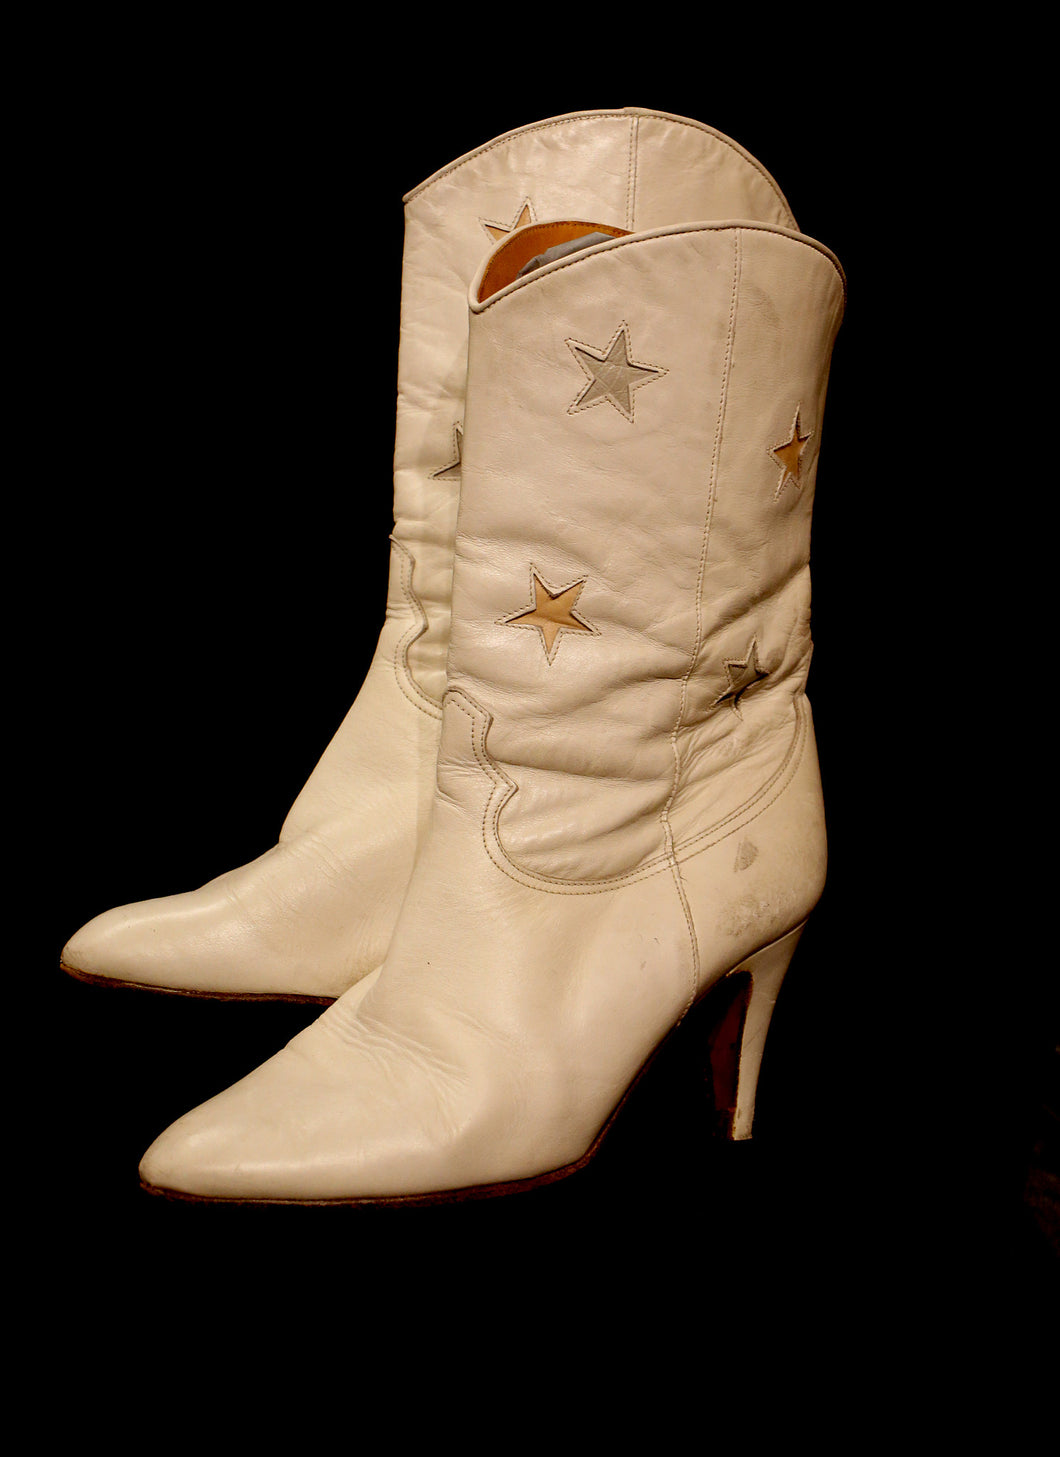 Vintage 1980s White Star Cowboy Boots